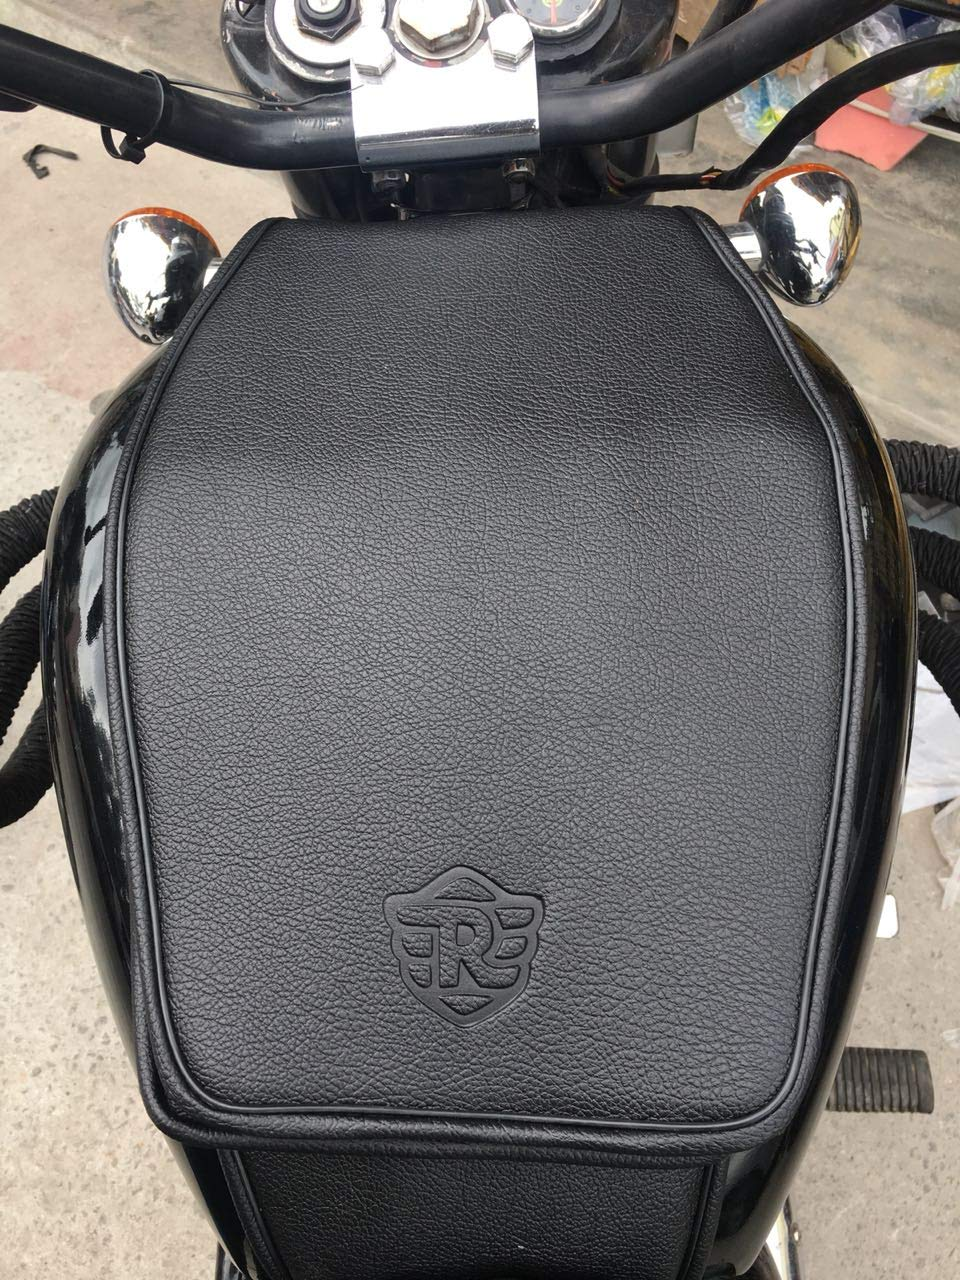 Sahara Royal Enfield Classic 350//500 Black Tank cover with LOGO